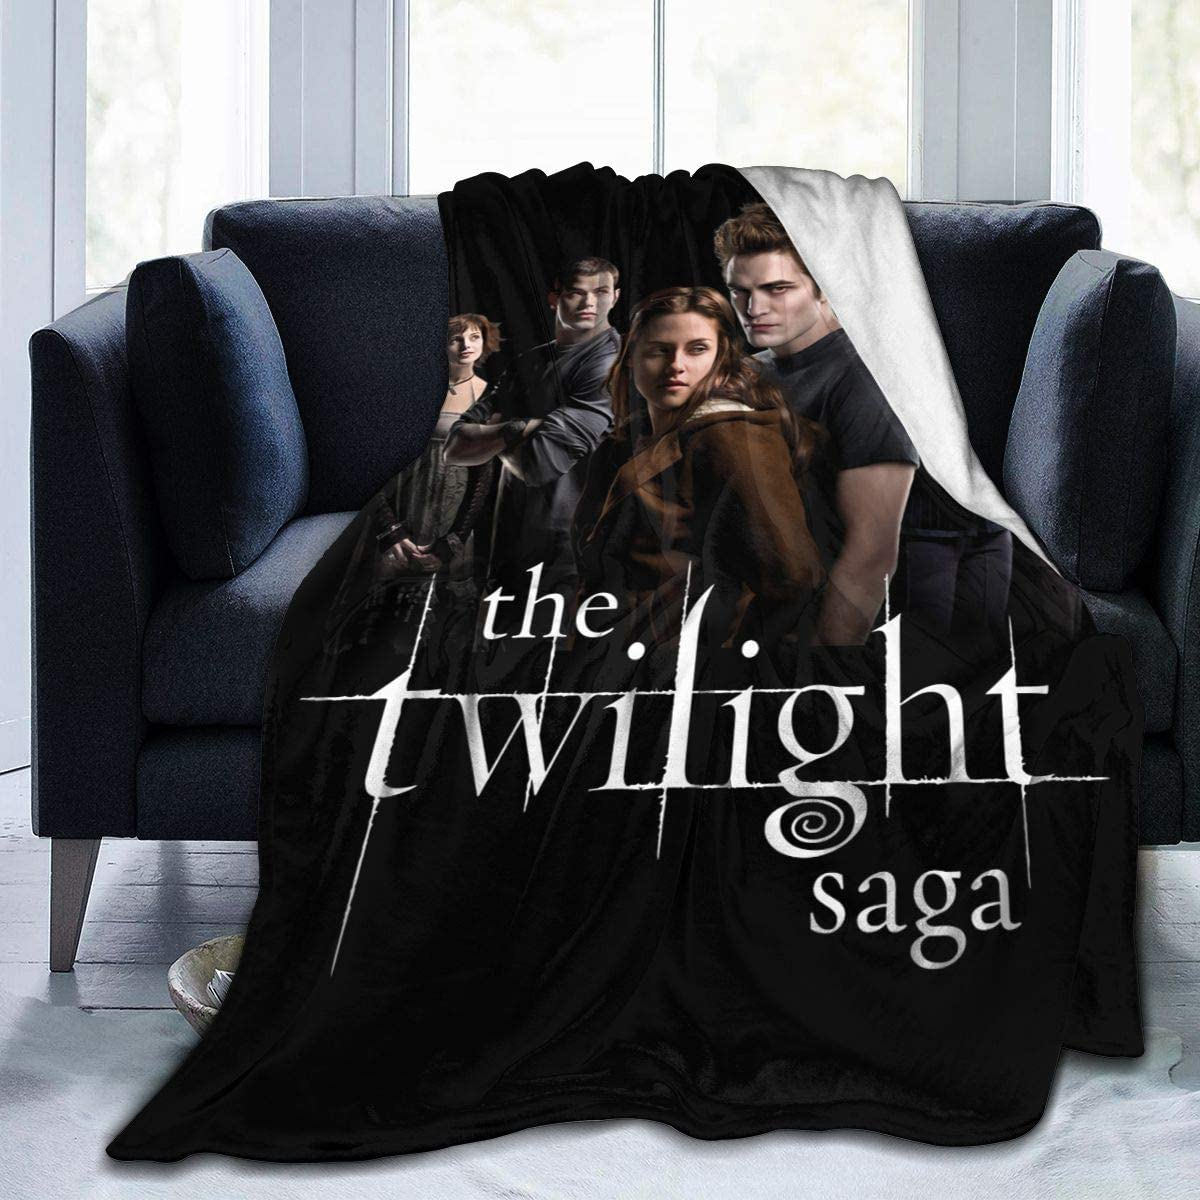 Wakaltk The Twilight Saga Throws Blanket Comfort Lightweigt Warmth Soft Cozy Blanket Fleece Blanket Couch Blanket Reversible Bed Throw TV Blanket for Kids Boys Girls 50'' X 40''